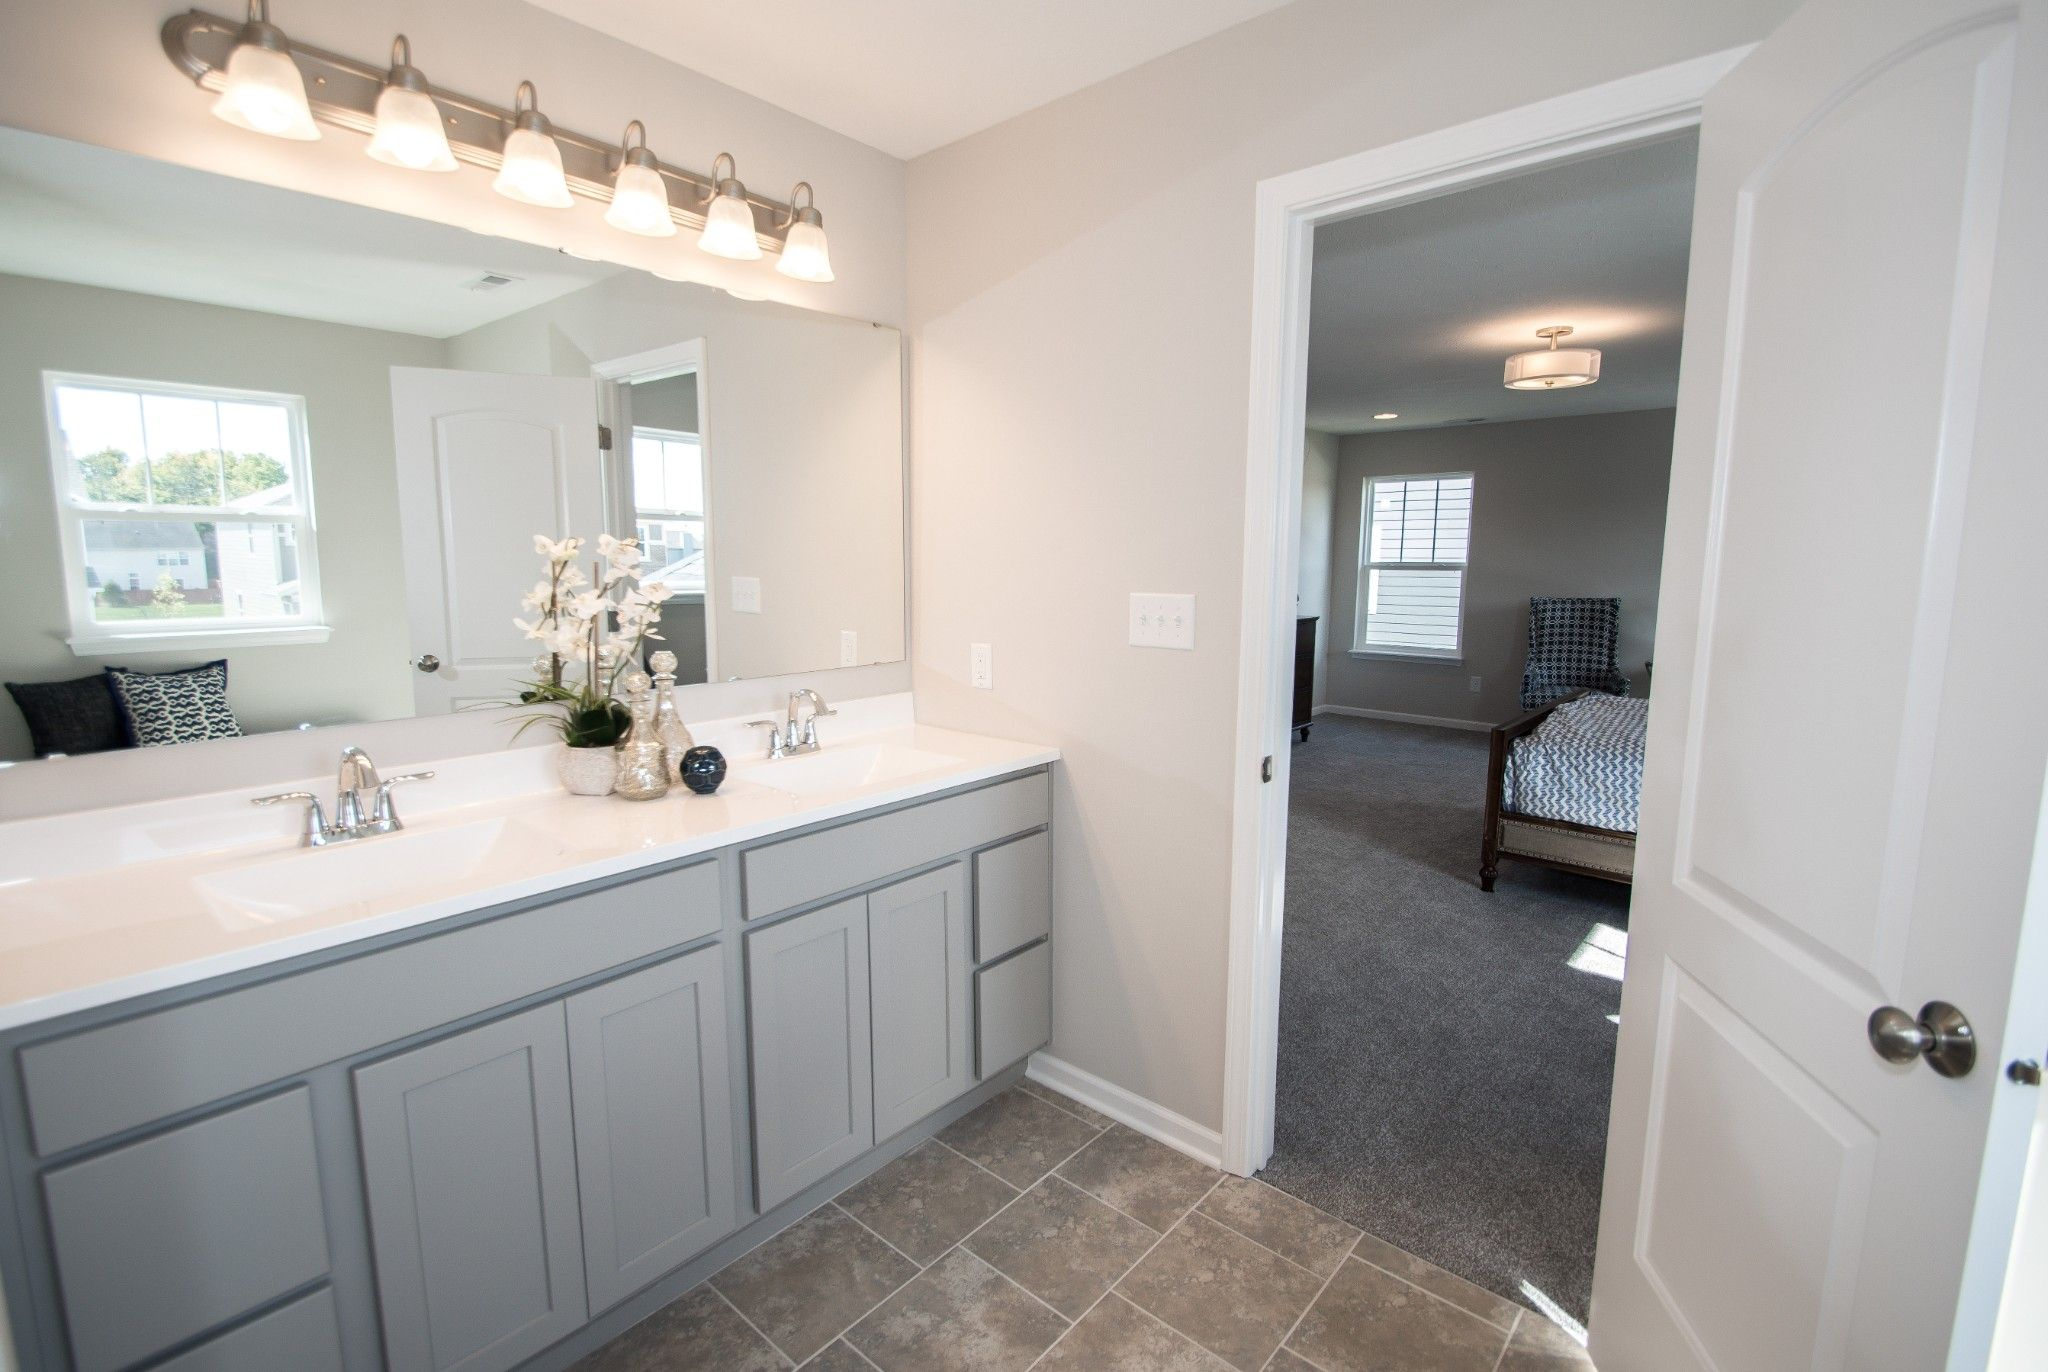 Bathroom featured in the Savannah By Olthof Homes in Indianapolis, IN